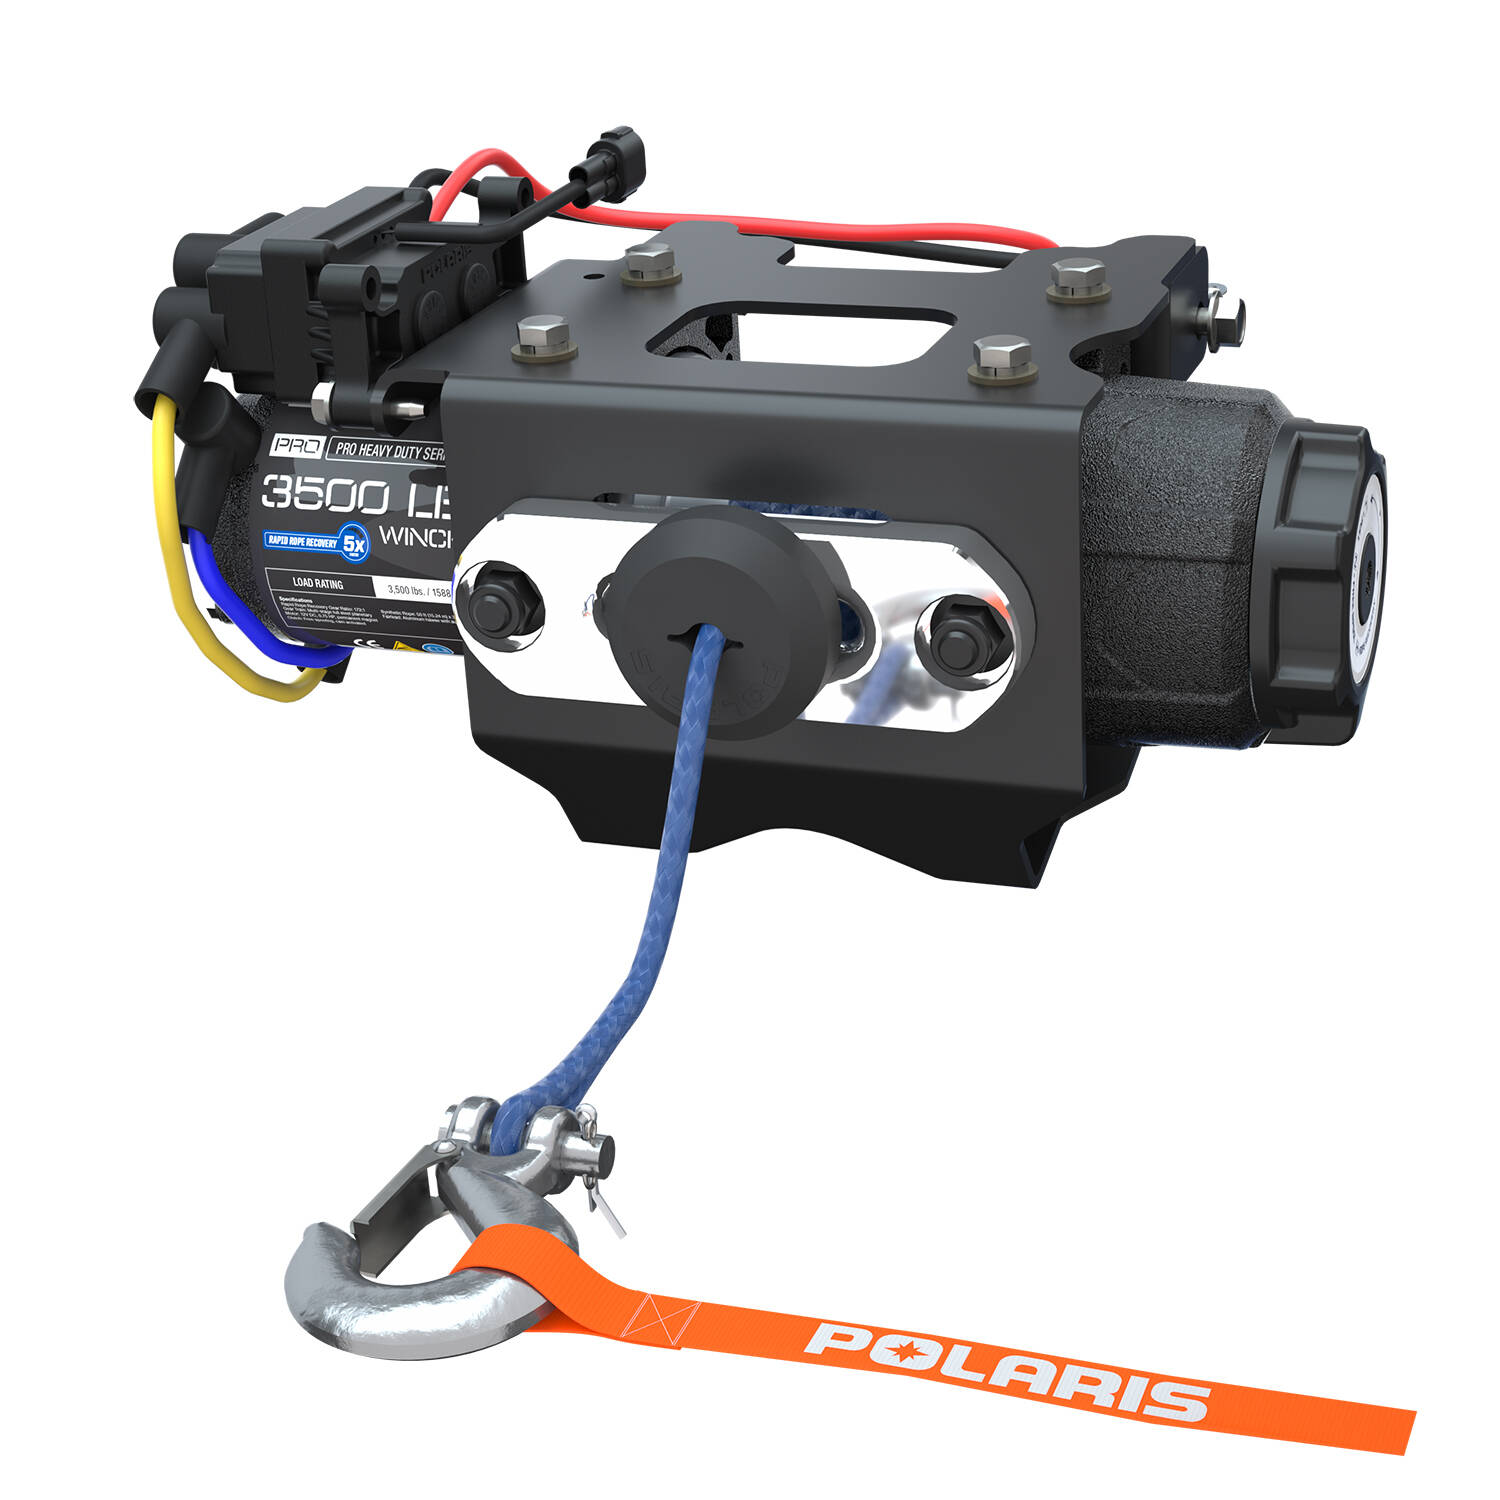 Polaris® PRO HD 3,500 Lb. Winch with Rapid Rope Recovery